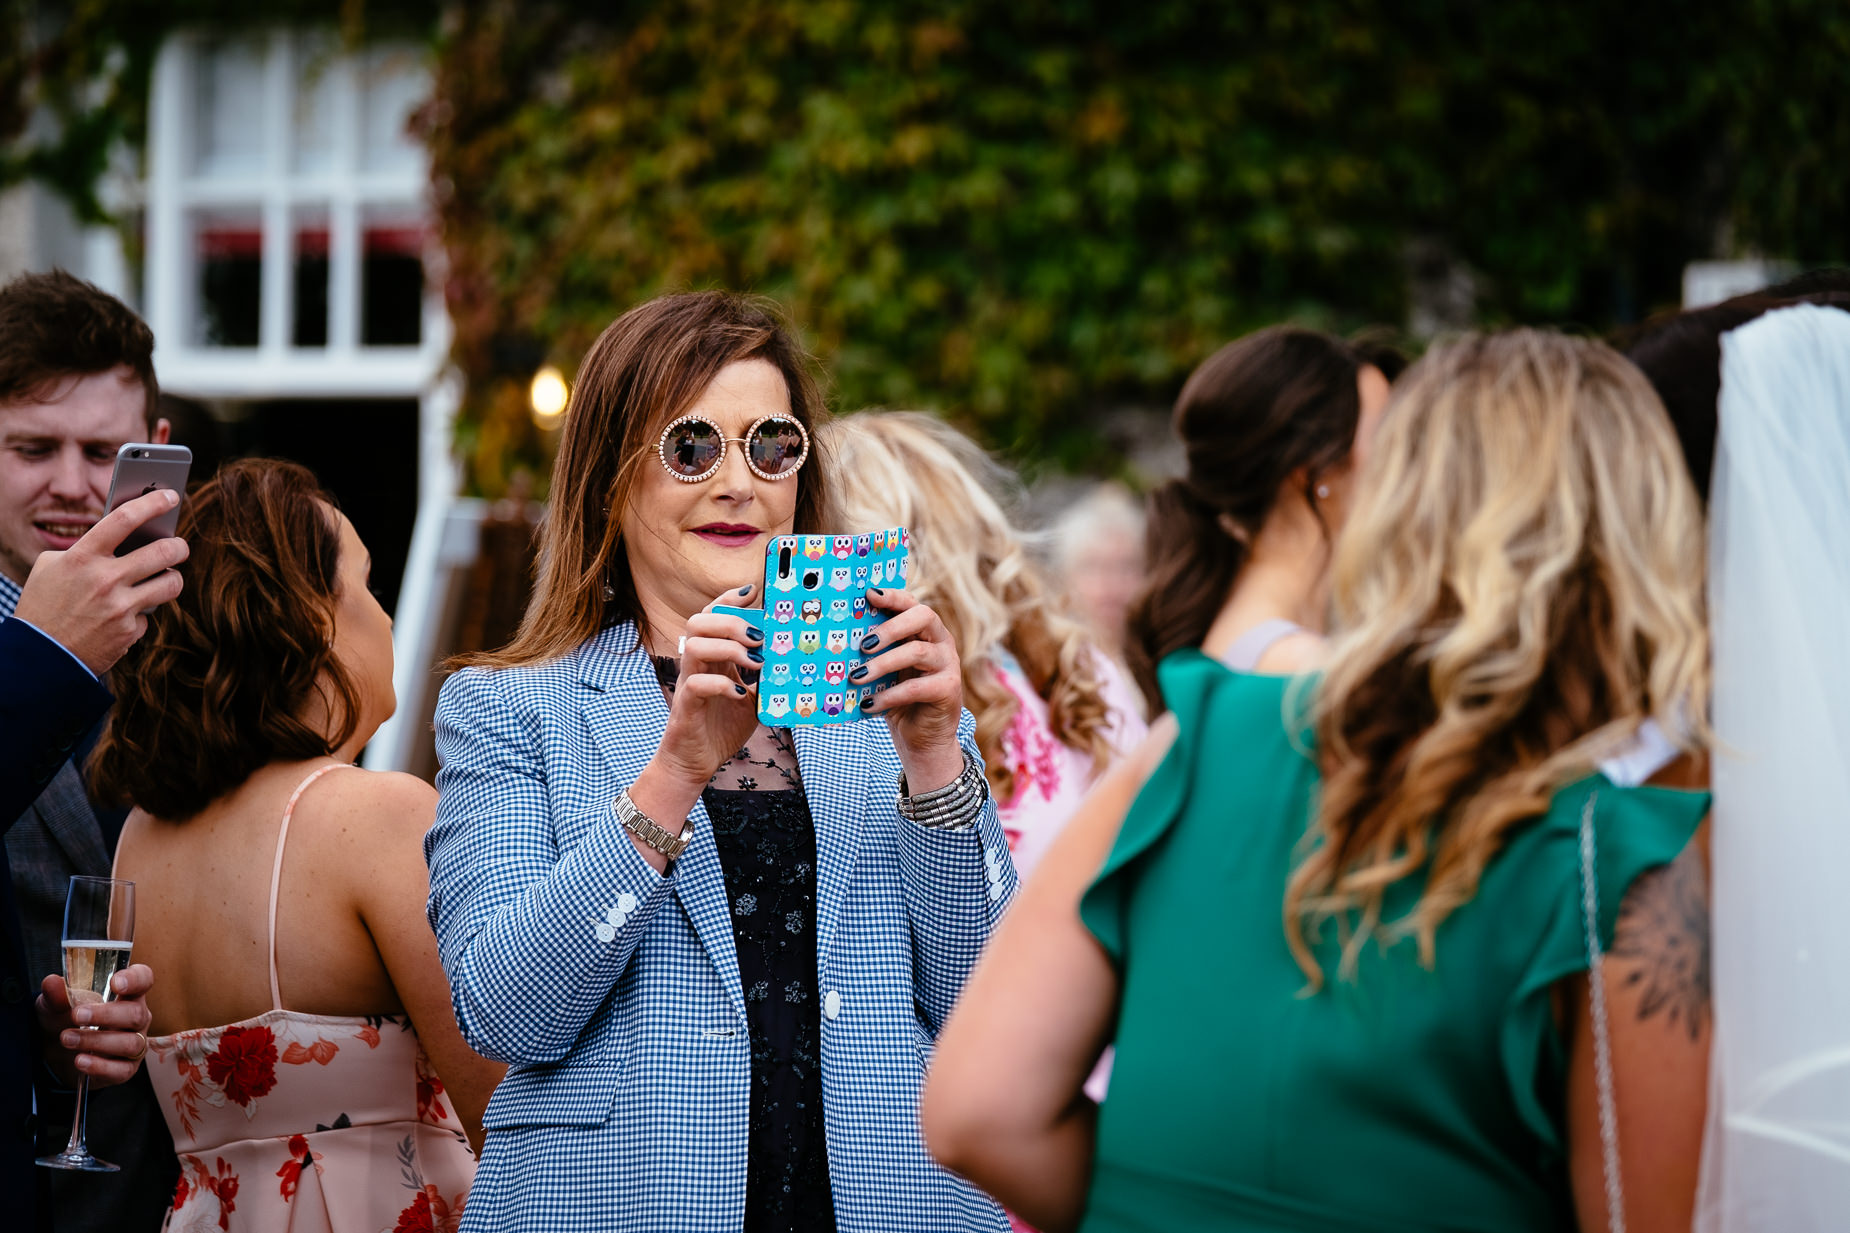 wedding guest taking photo with mobile phone